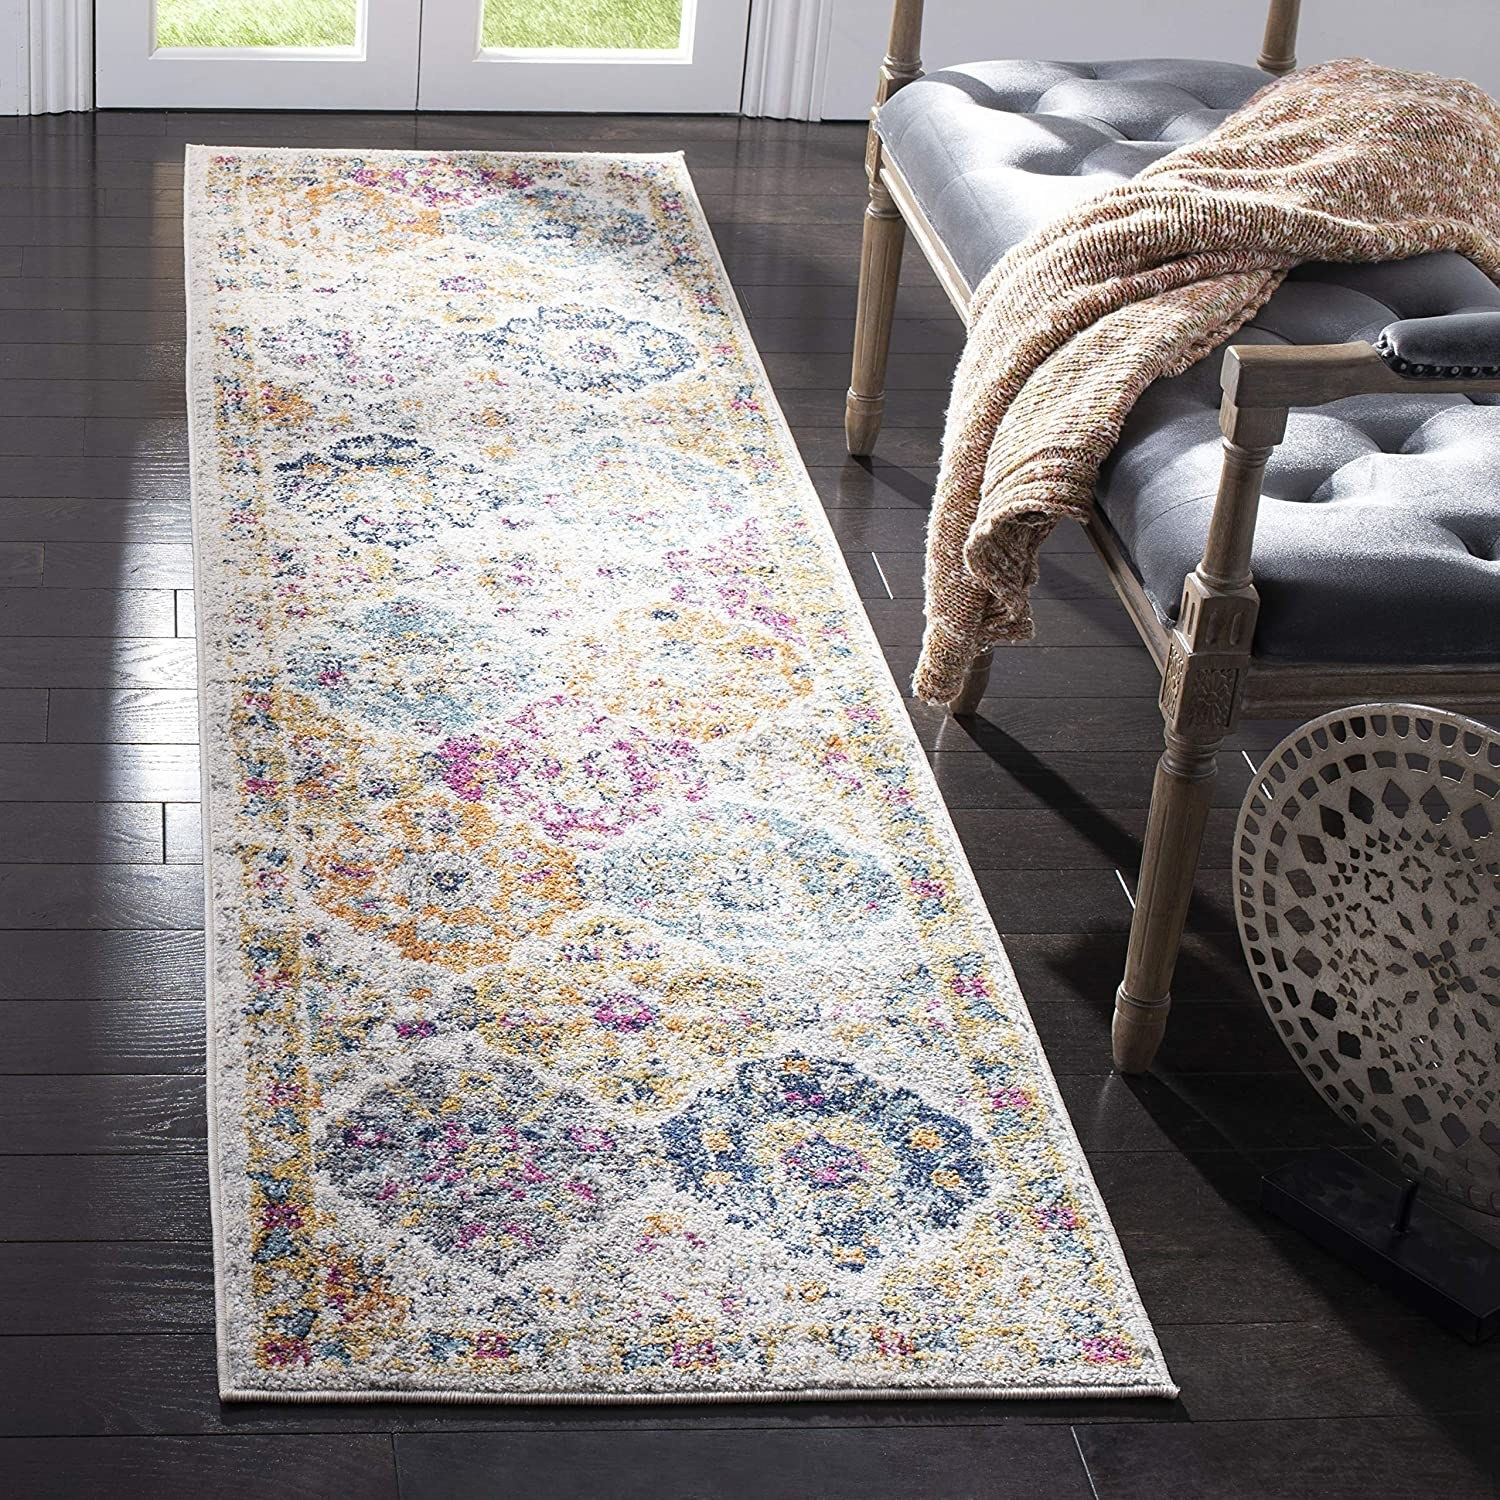 The rectangular runner with multi-color diamond-like pattern and border around it in a house